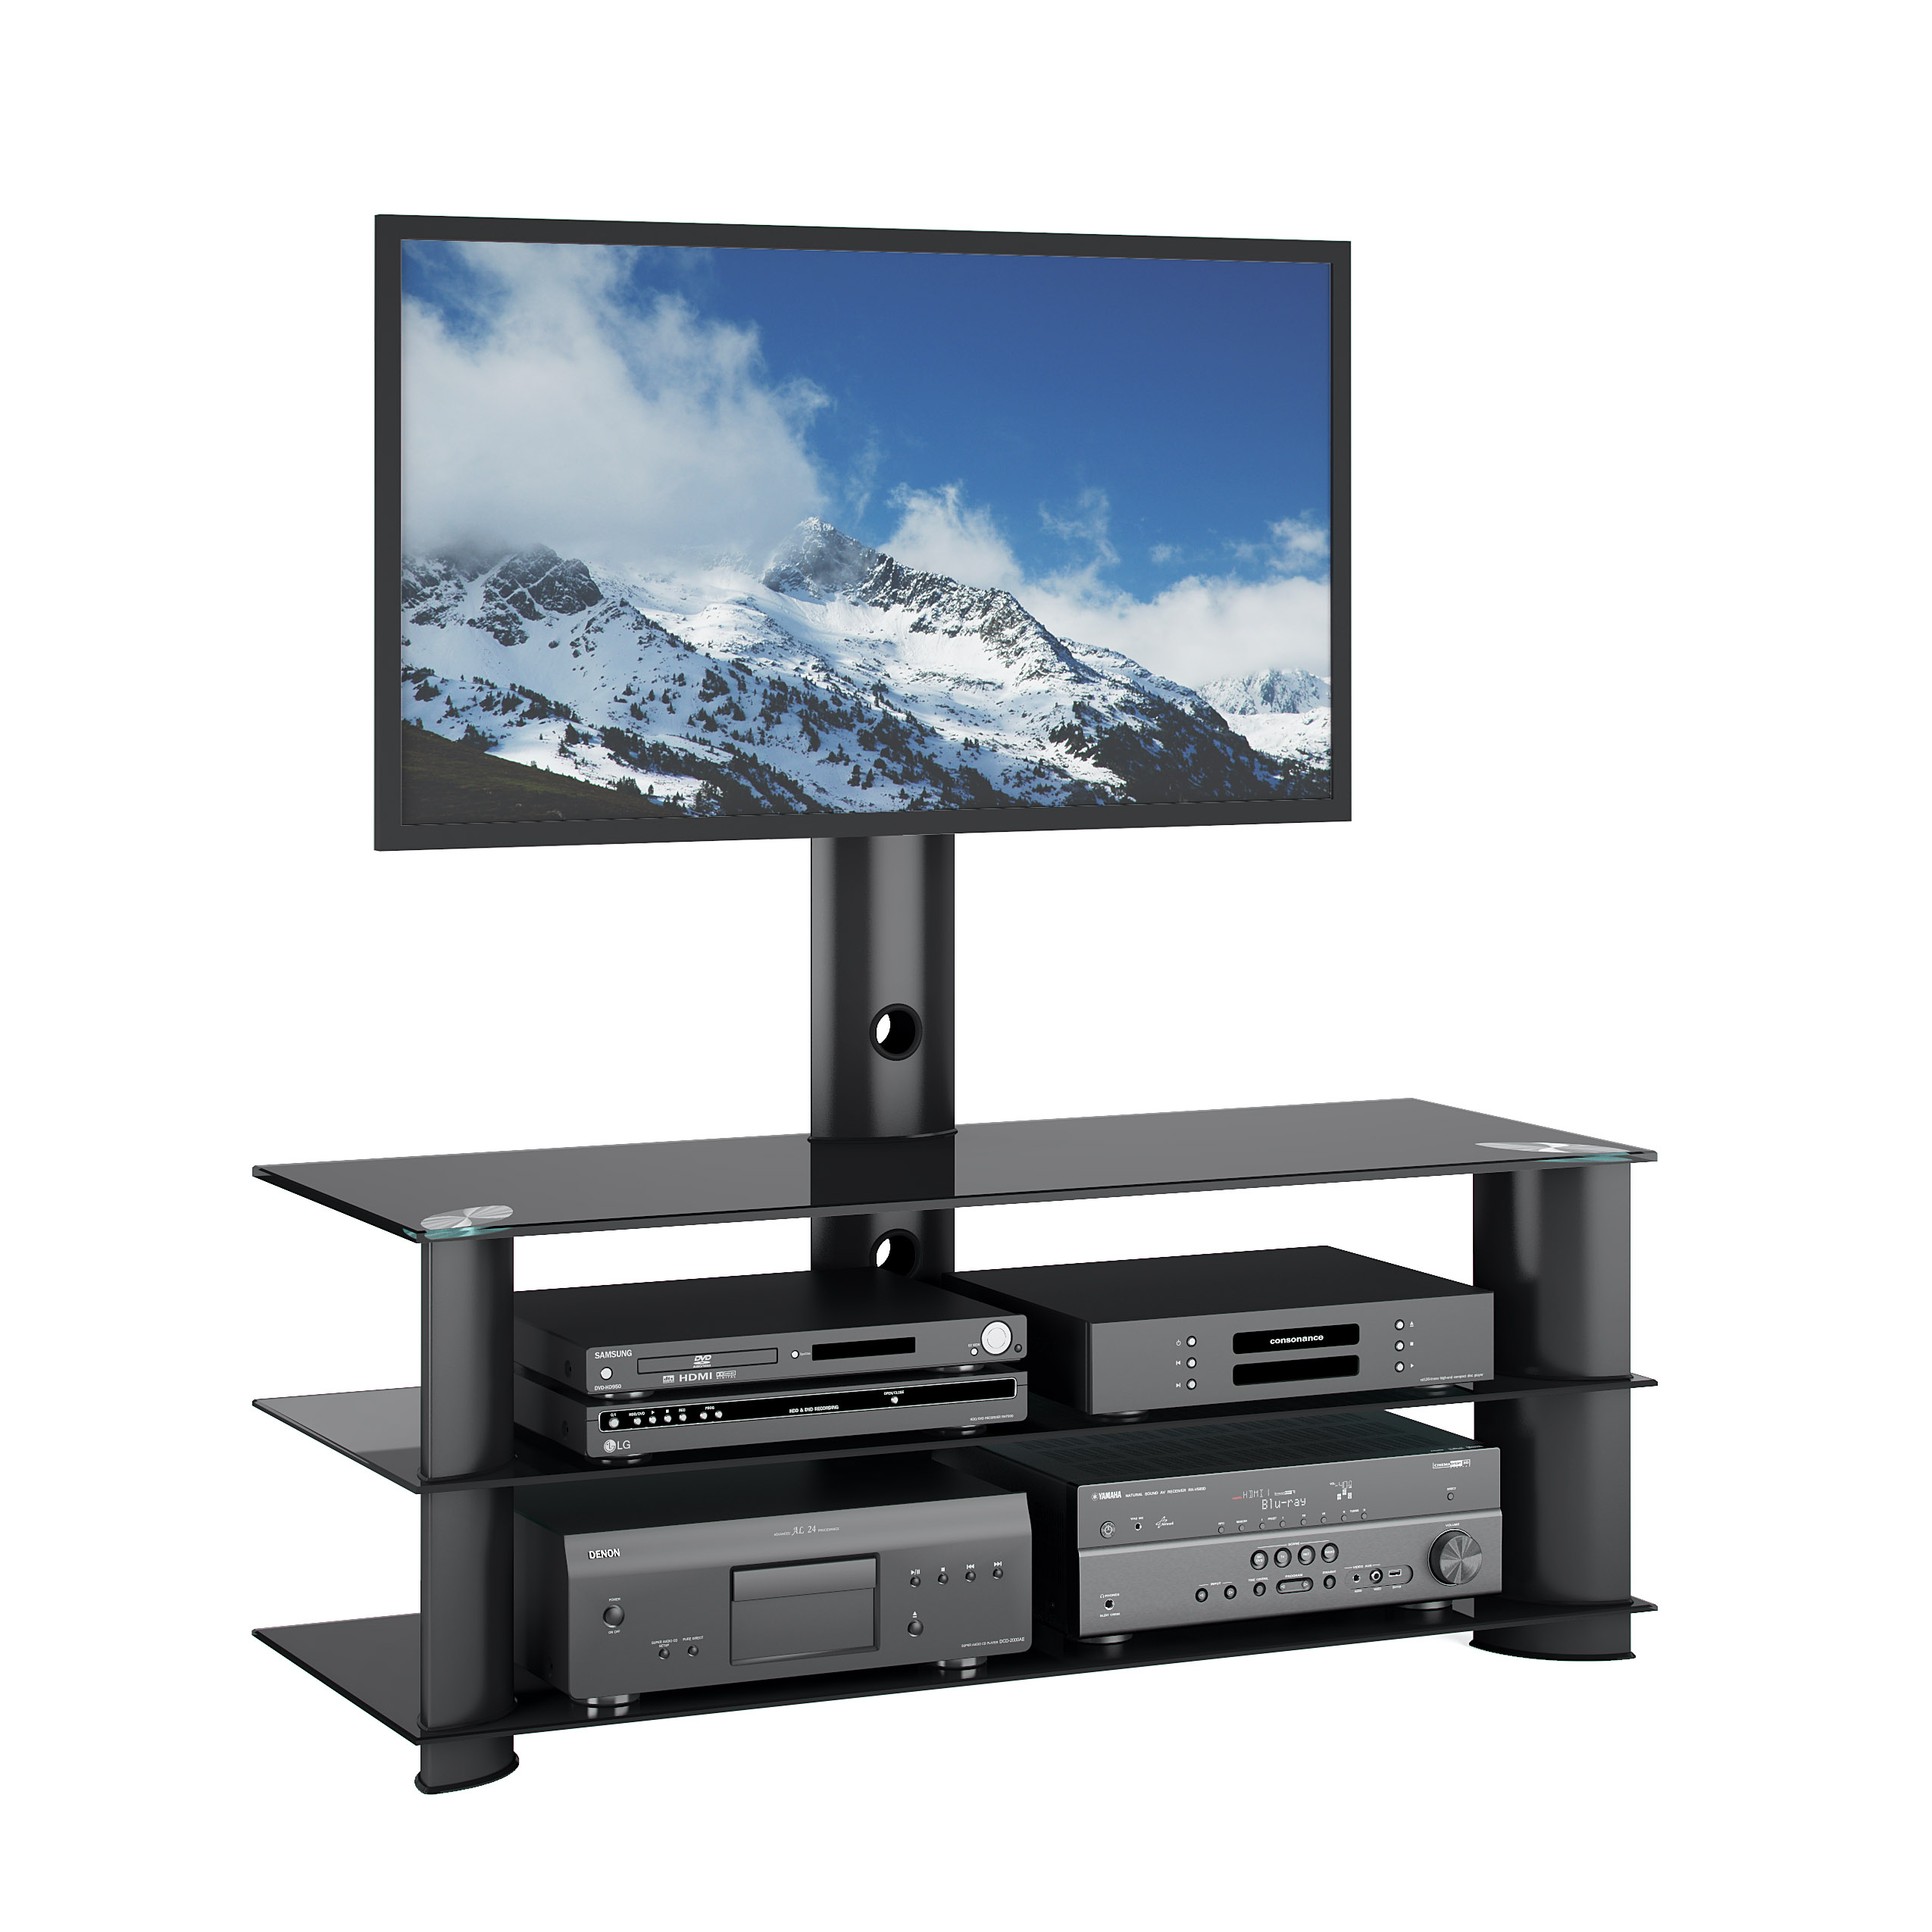 Kmart Tv Mount Black Component Tv Stand Kmart